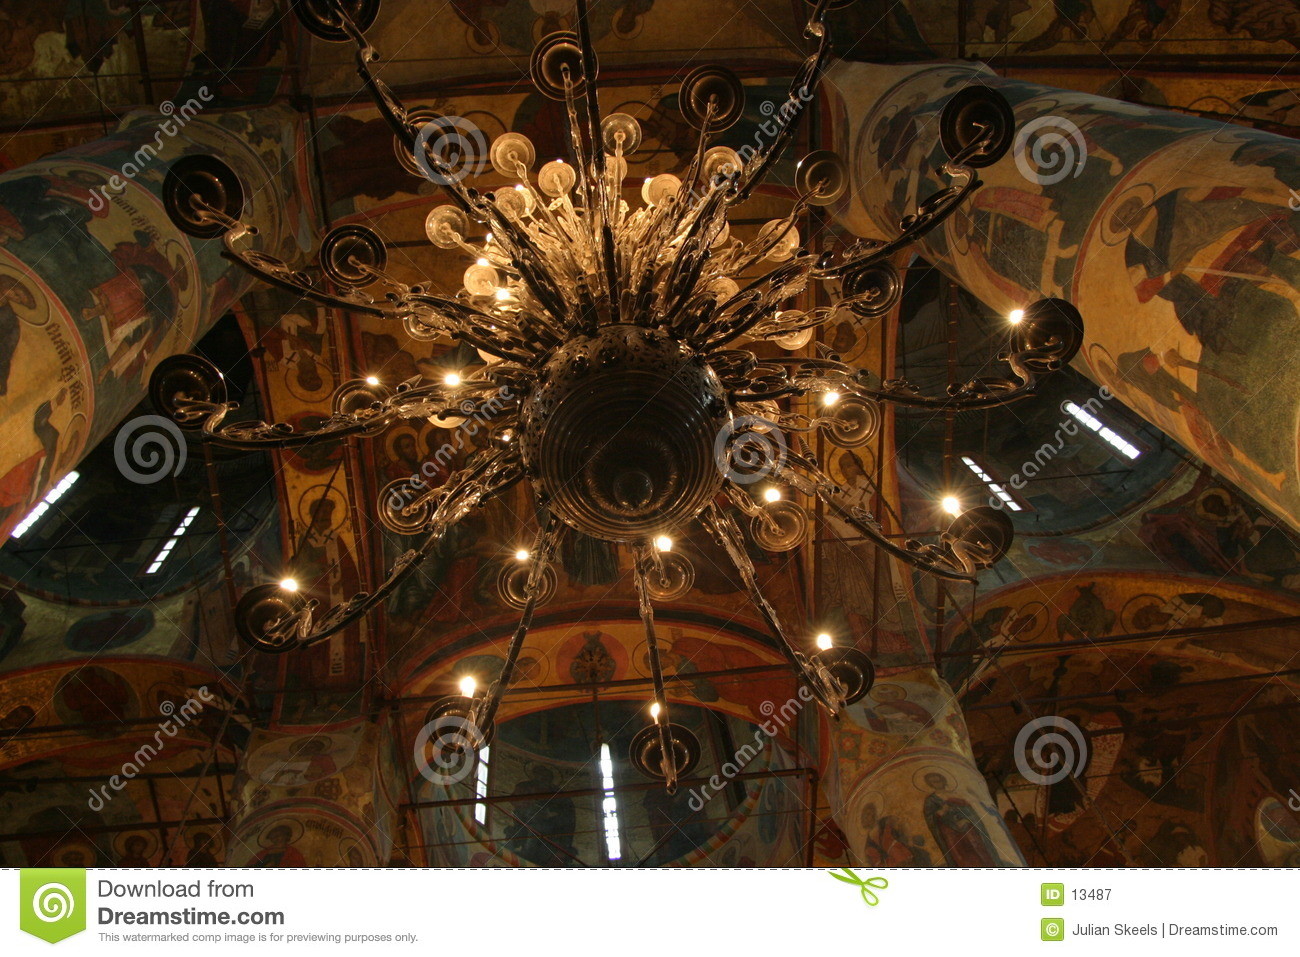 Chandelier in the Kremlin